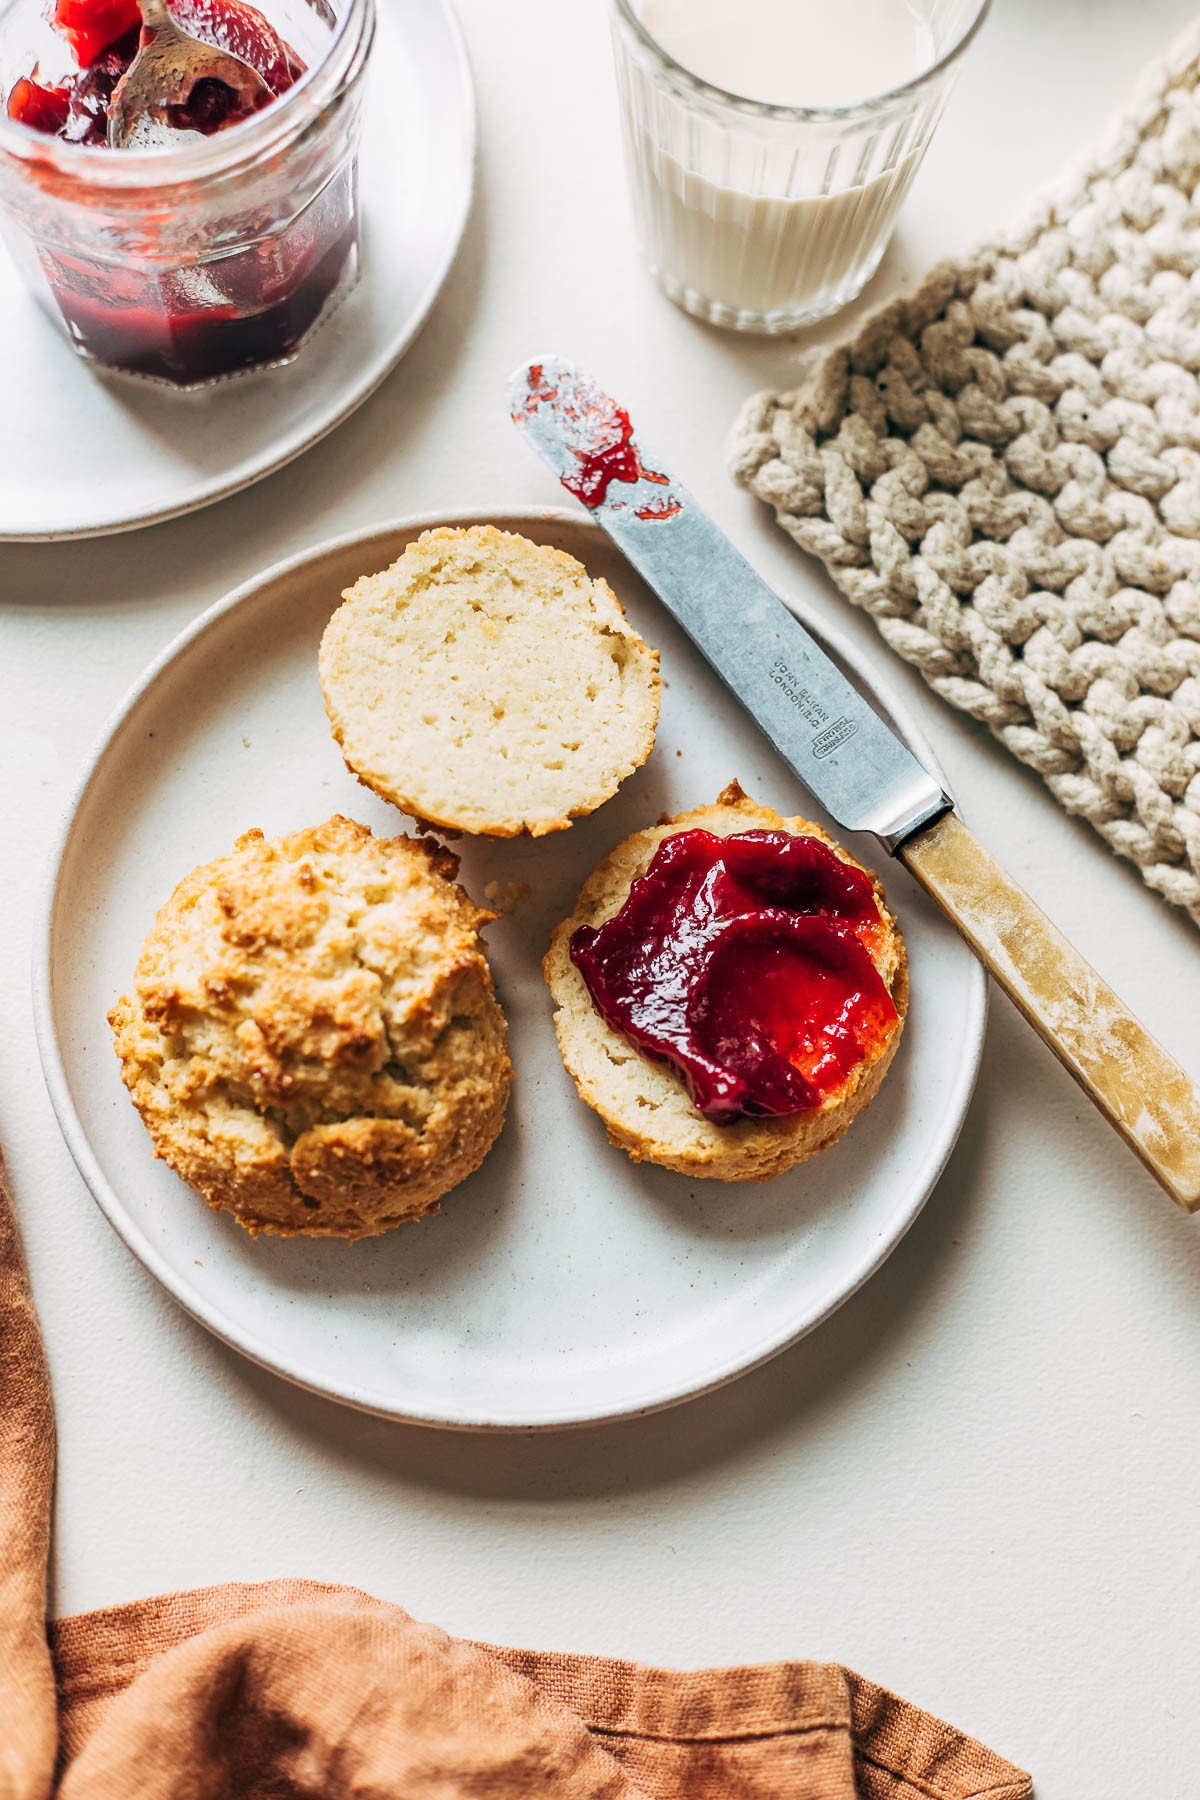 Two almond flour biscuits on a plate, one sliced and topped with jam.